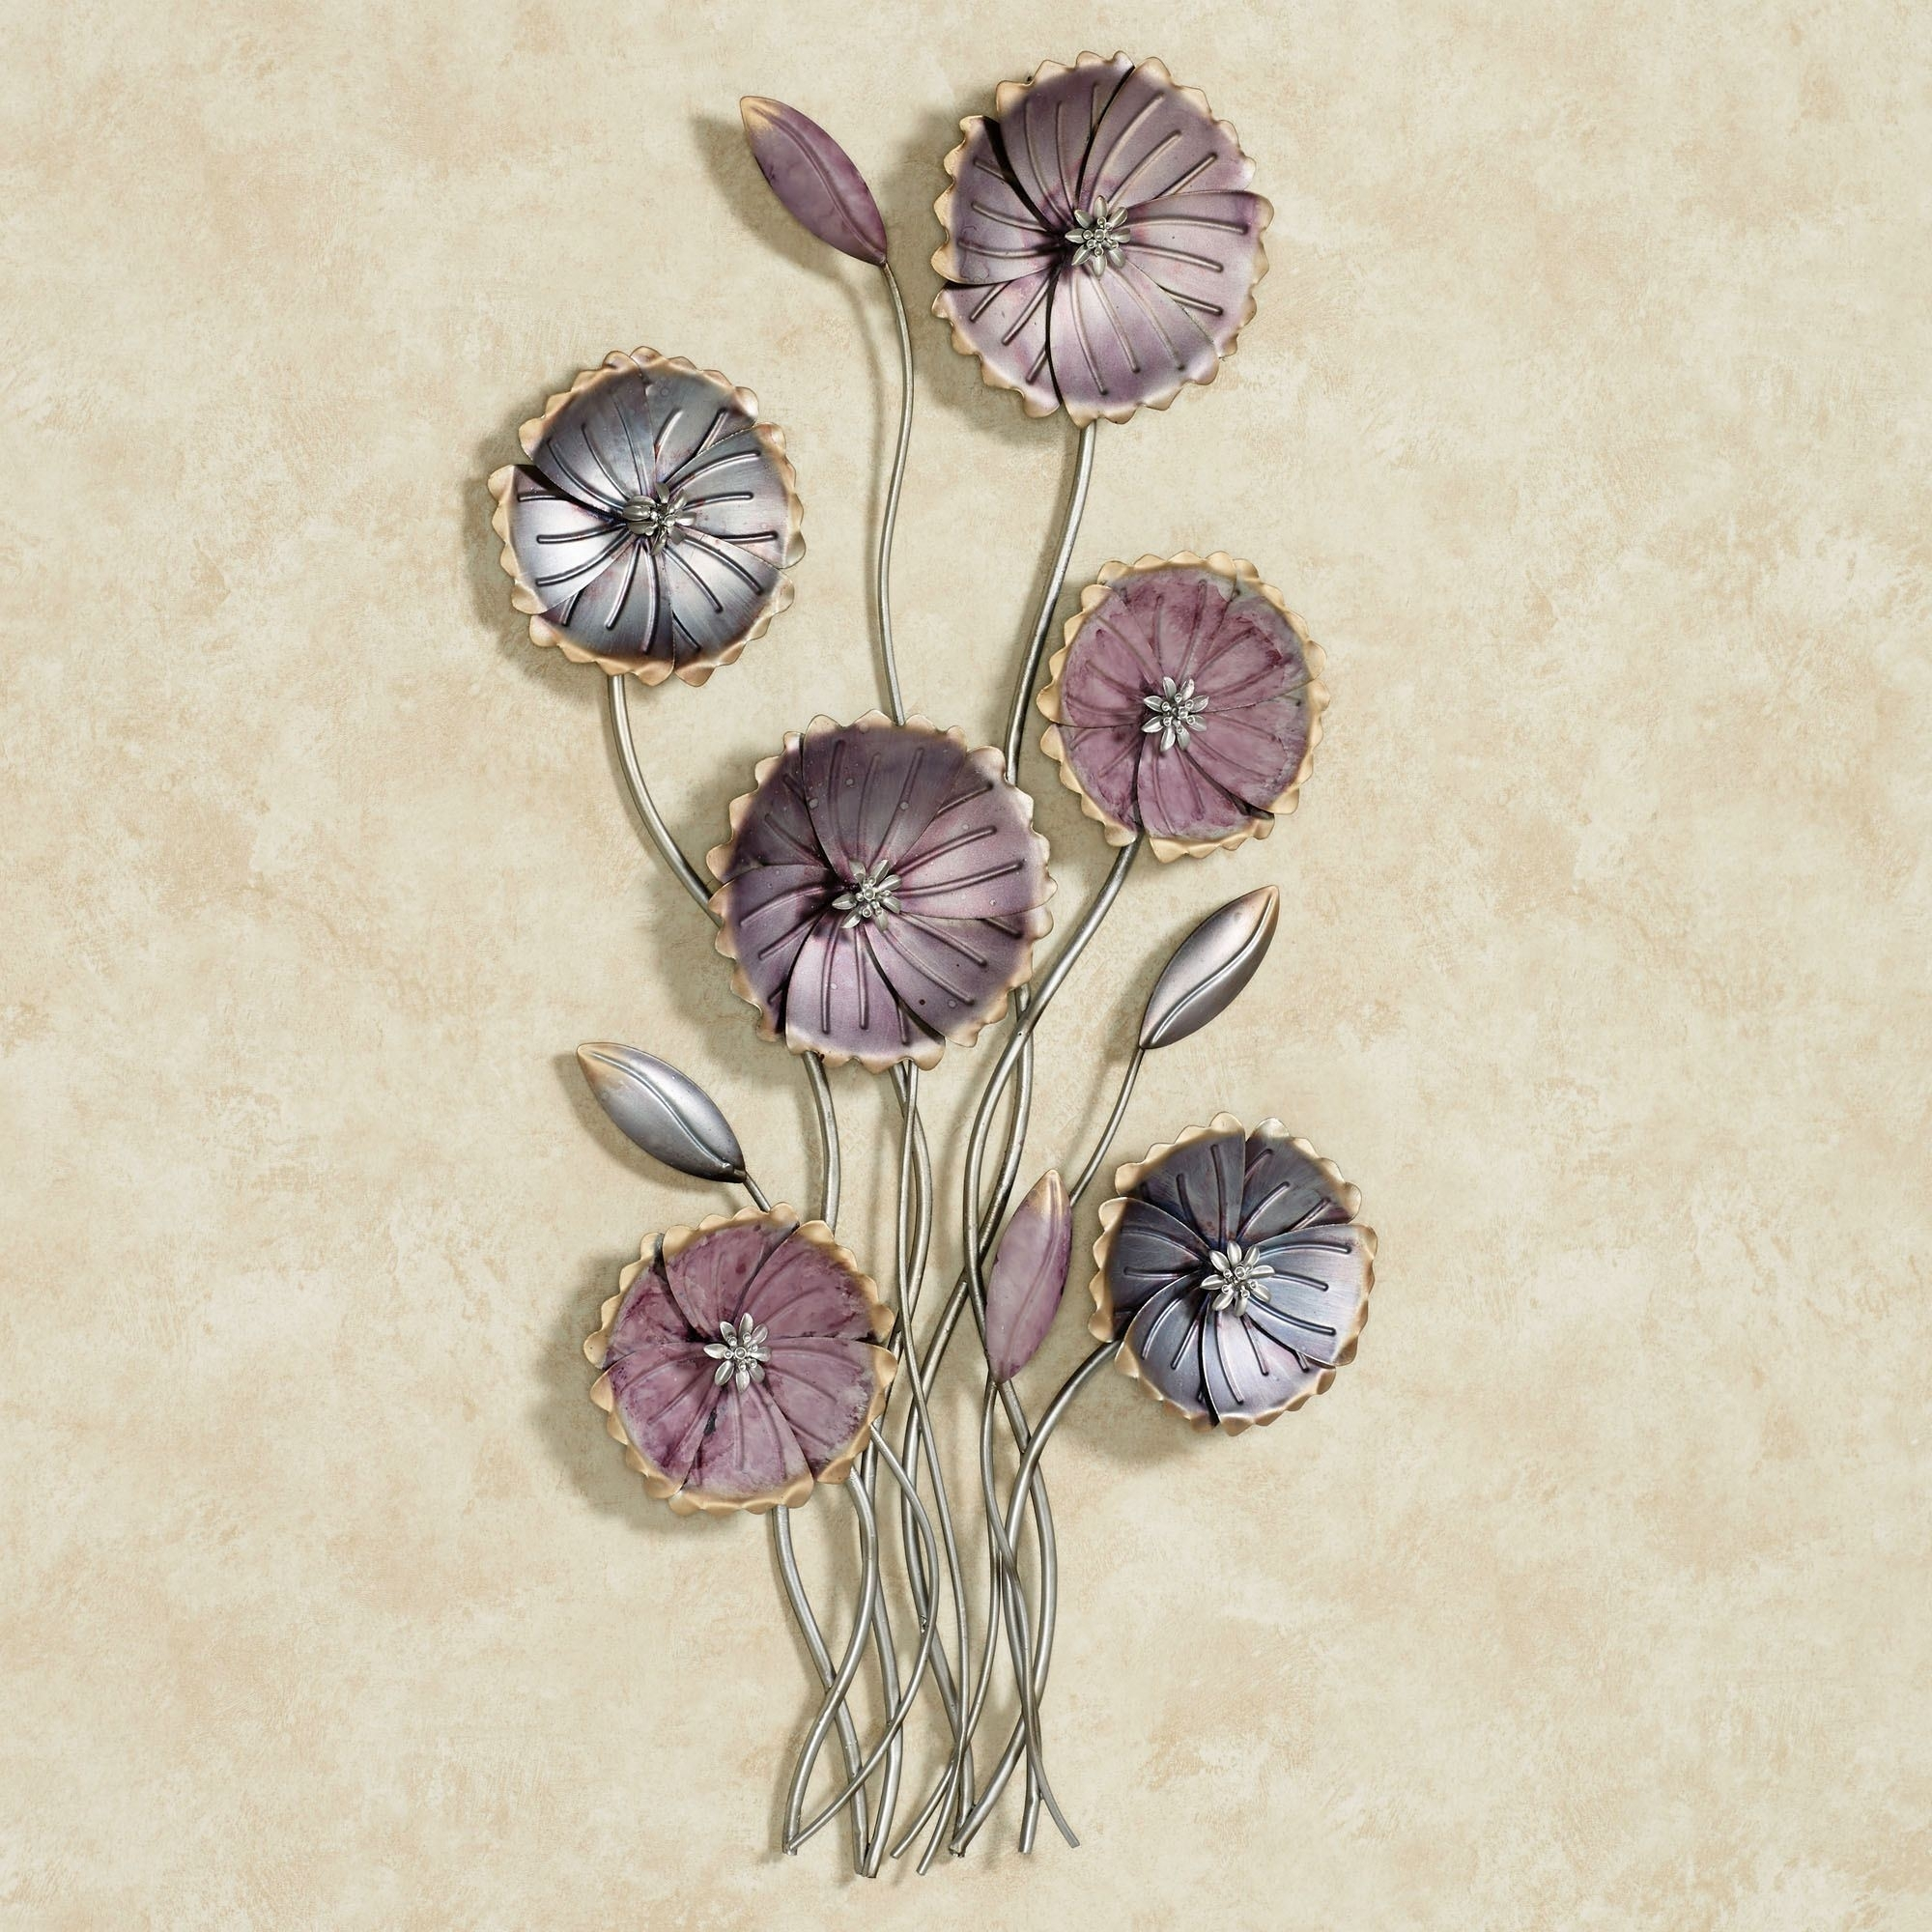 Decor: Purple Flower Kirklands Wall Art Metal With White Paint Wall In Newest Metal Flower Wall Art (View 4 of 15)